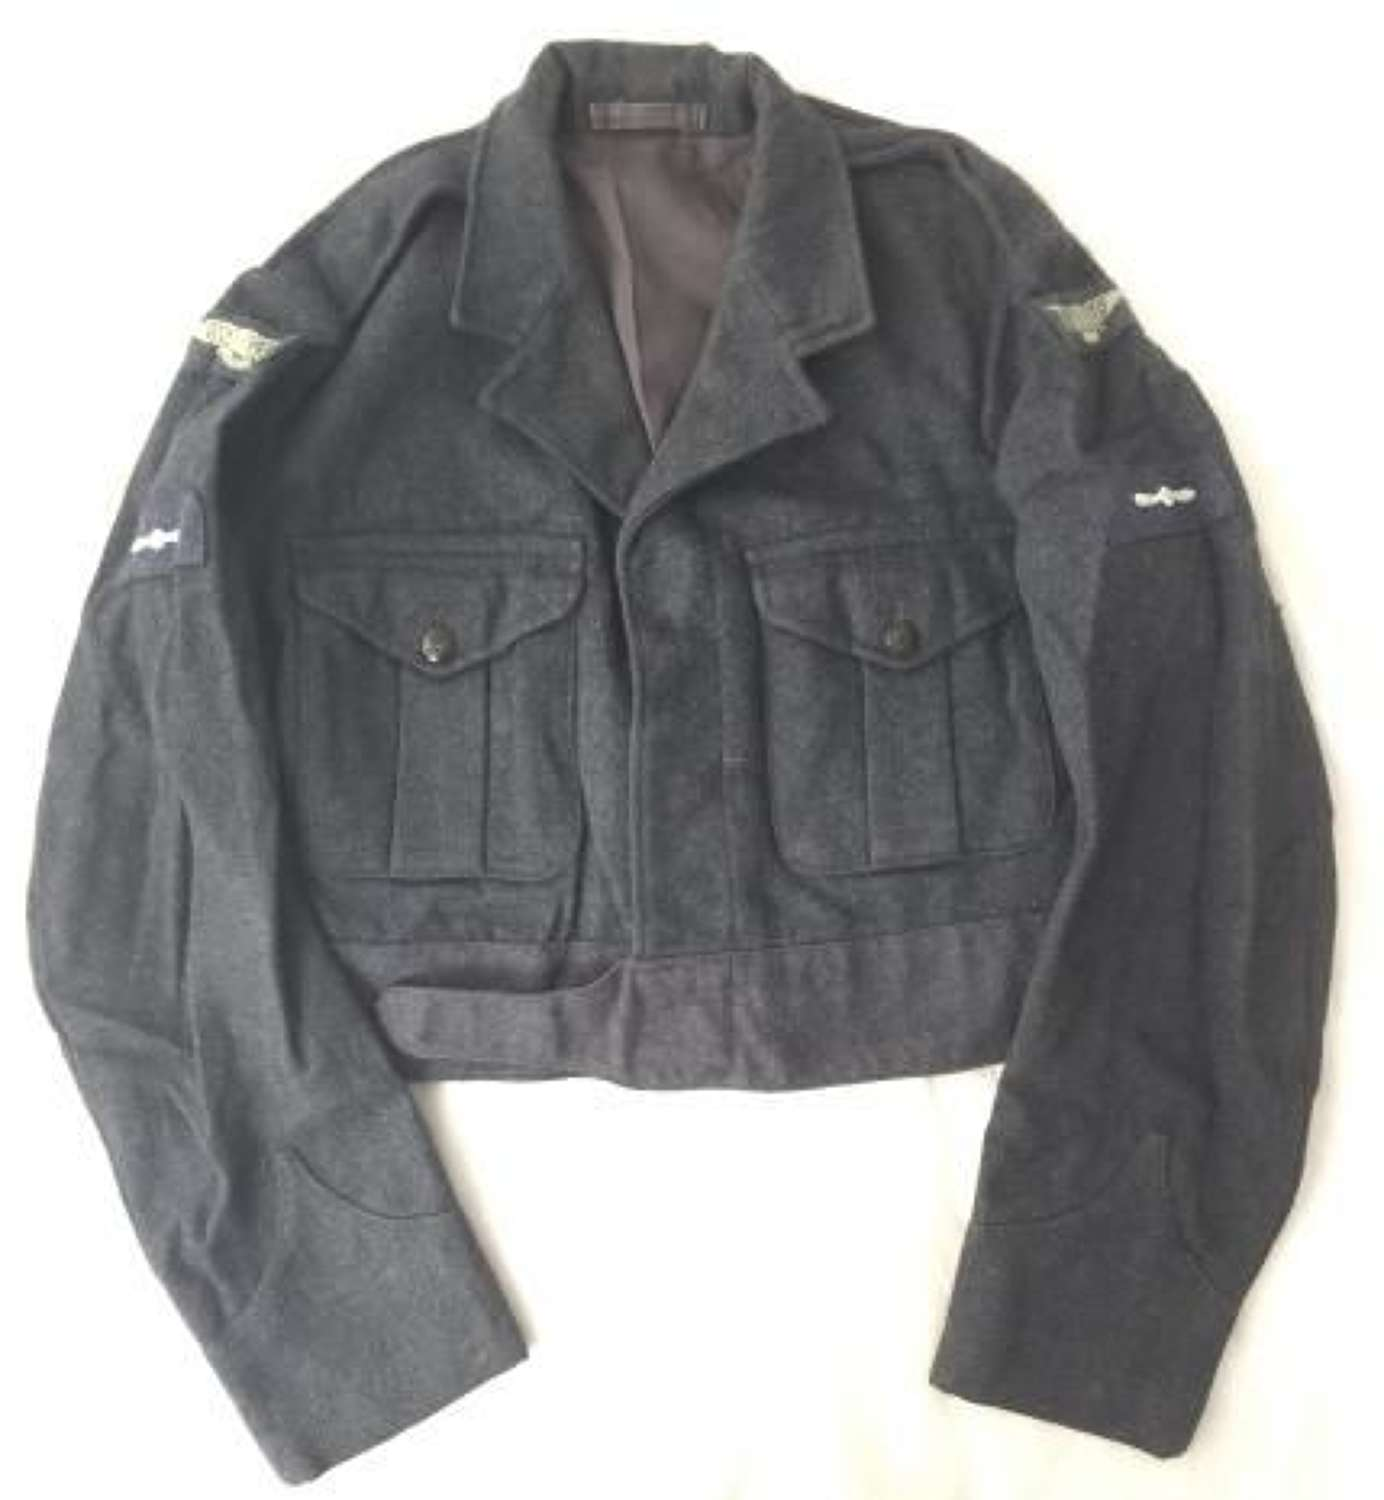 1954 Dated RAF New Pattern Battledress Blouse With LAC Insignia